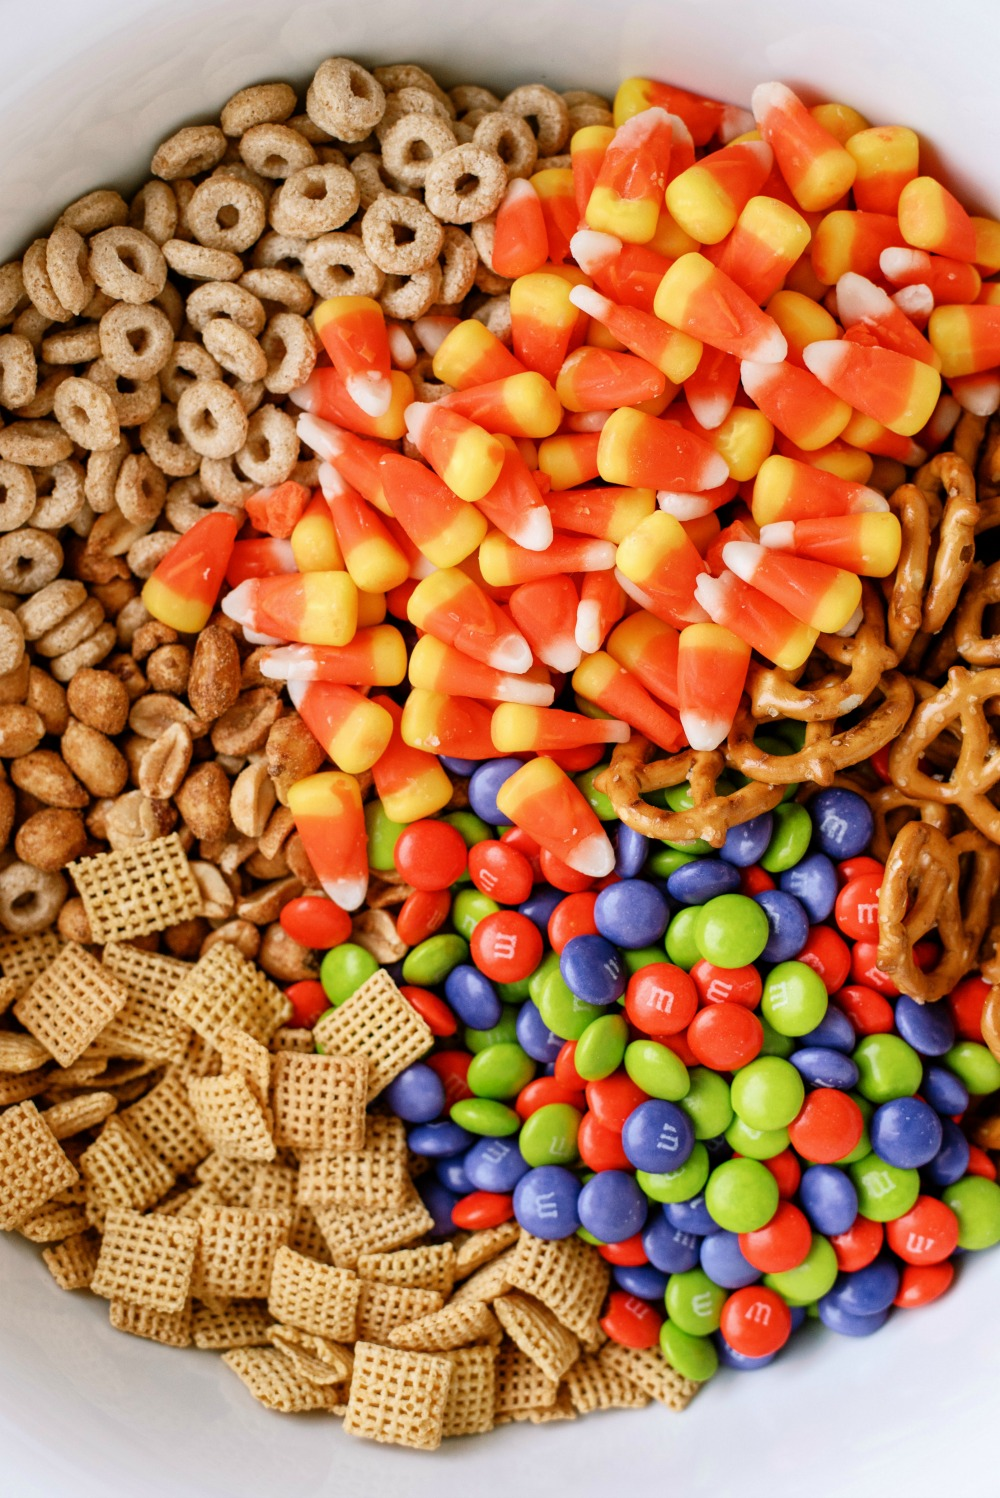 Ingredients for chex mix monster munch dumped into a bowl